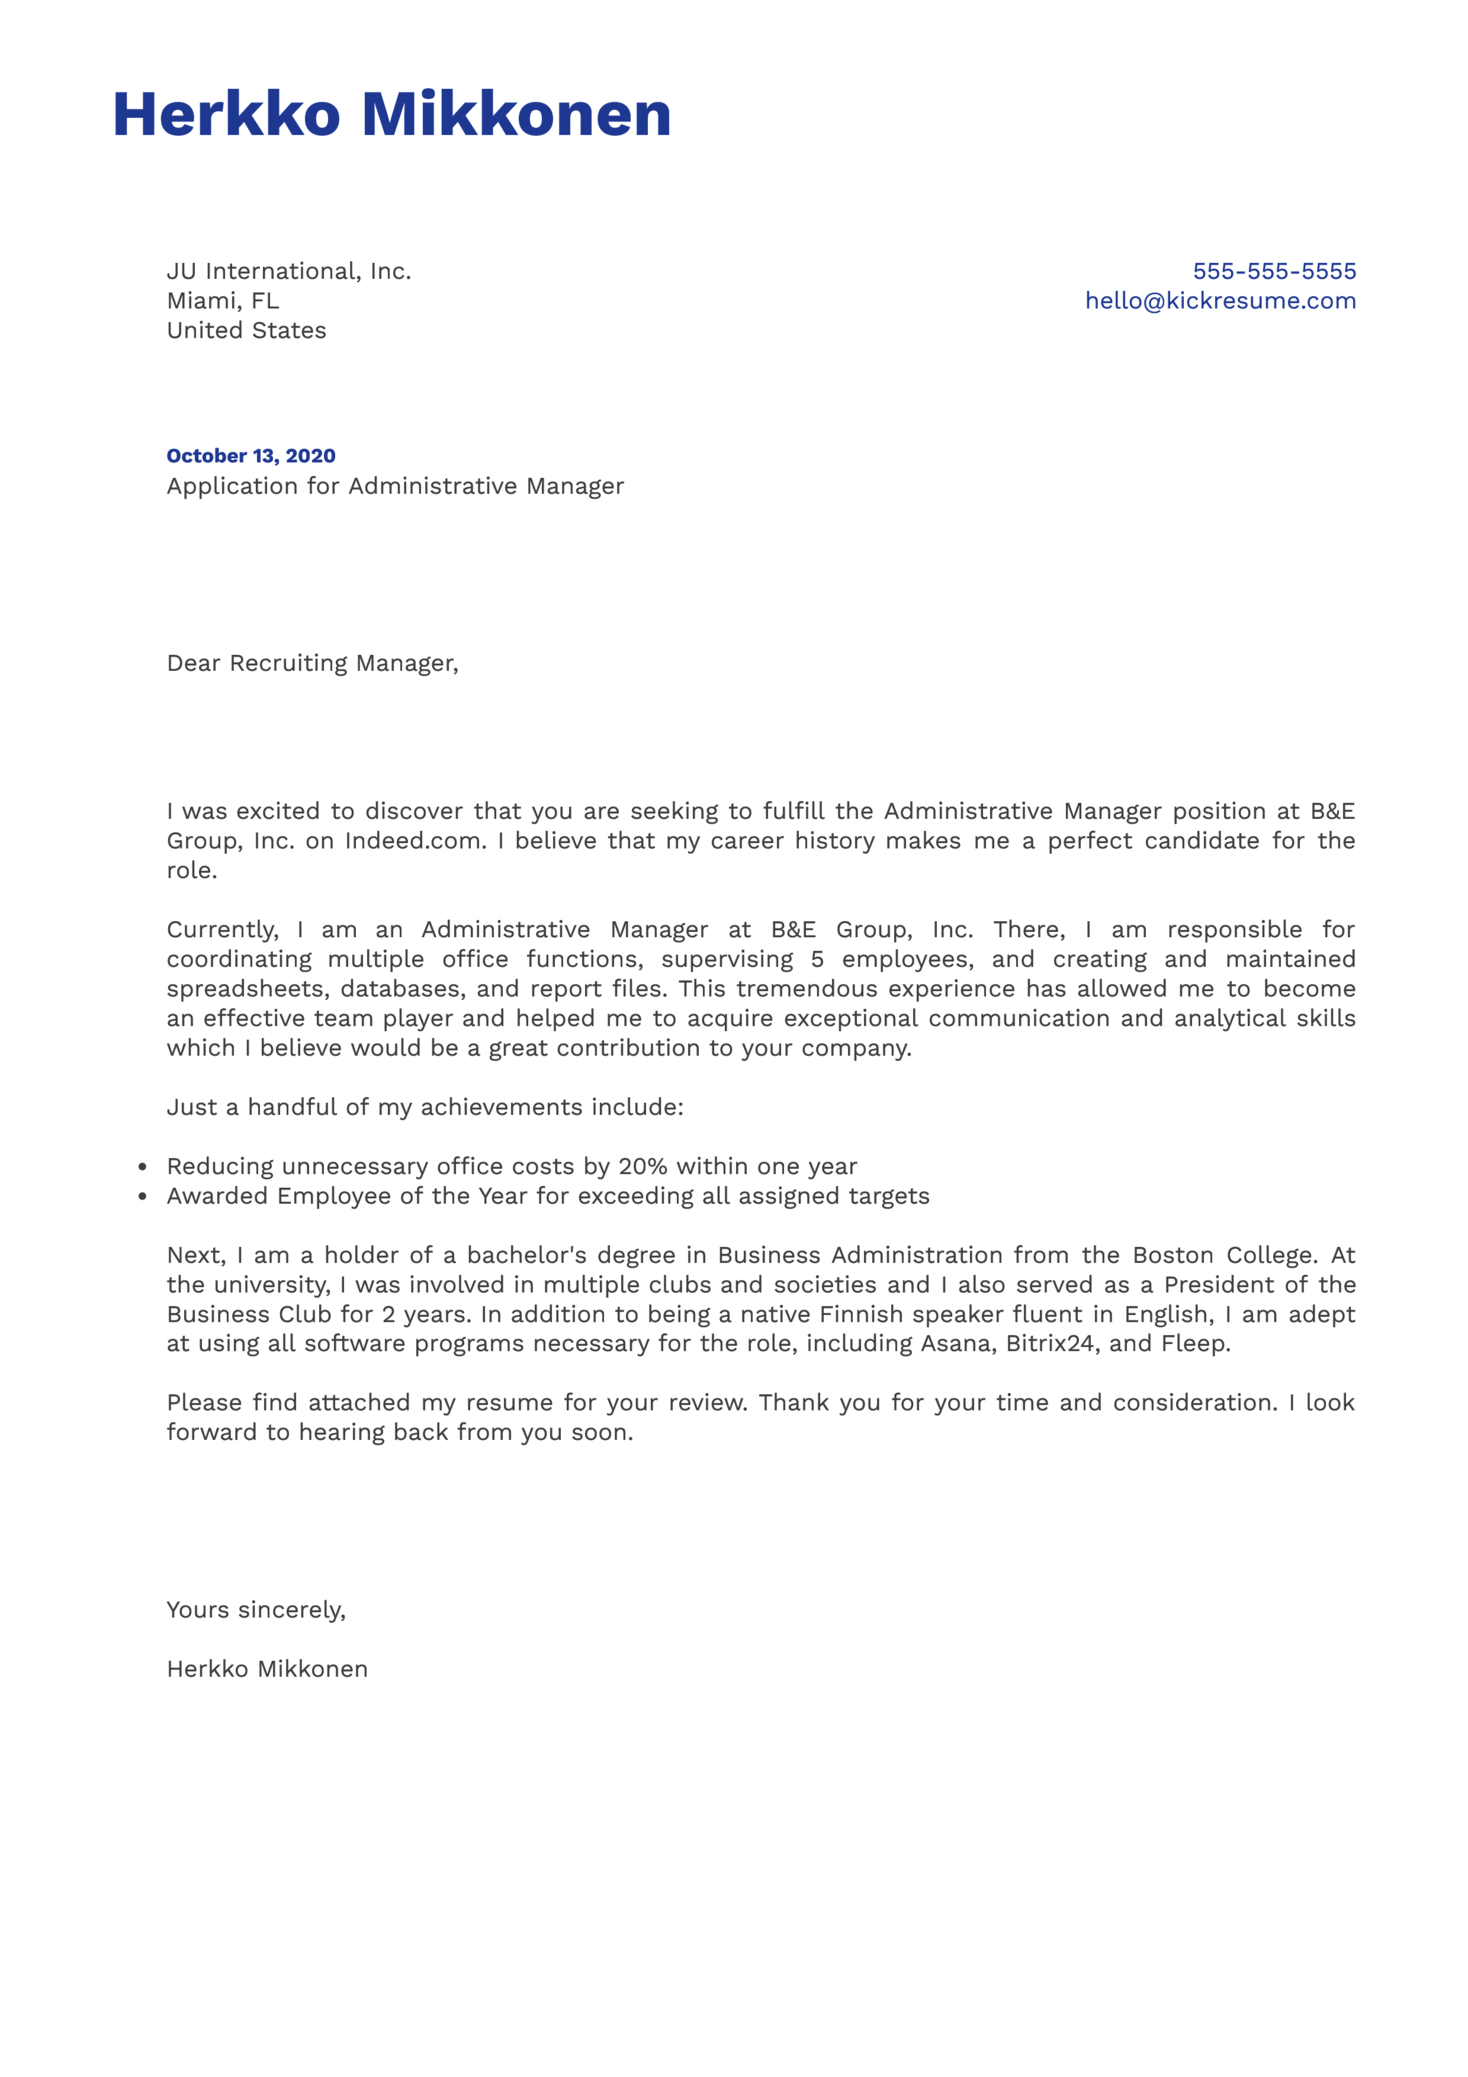 Administrative Manager Cover Letter Example